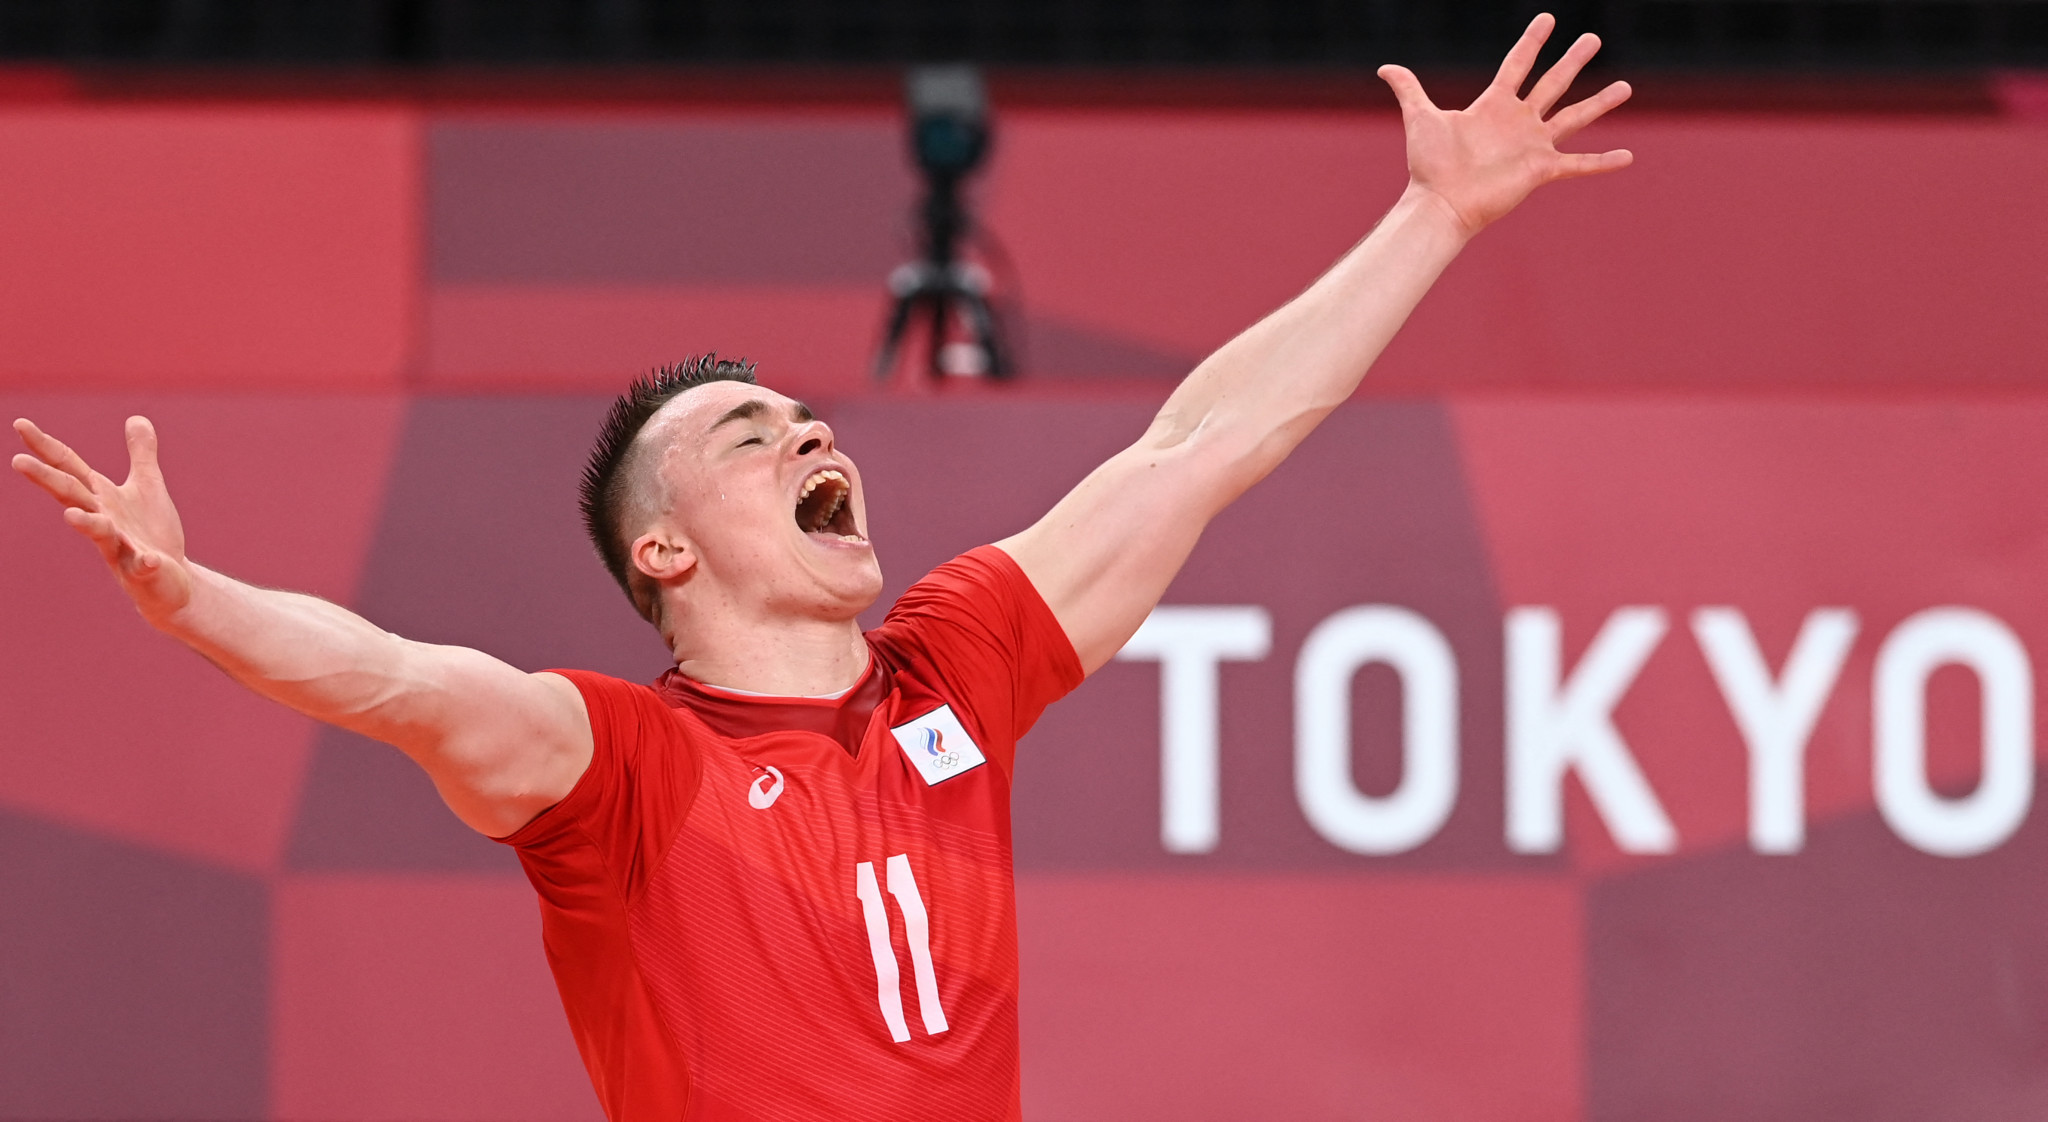 For Pavel Pankov, volleyball runs in the family as his mother, Marina Pankova, is an Olympic champion from Seoul 1988 ©Getty Images